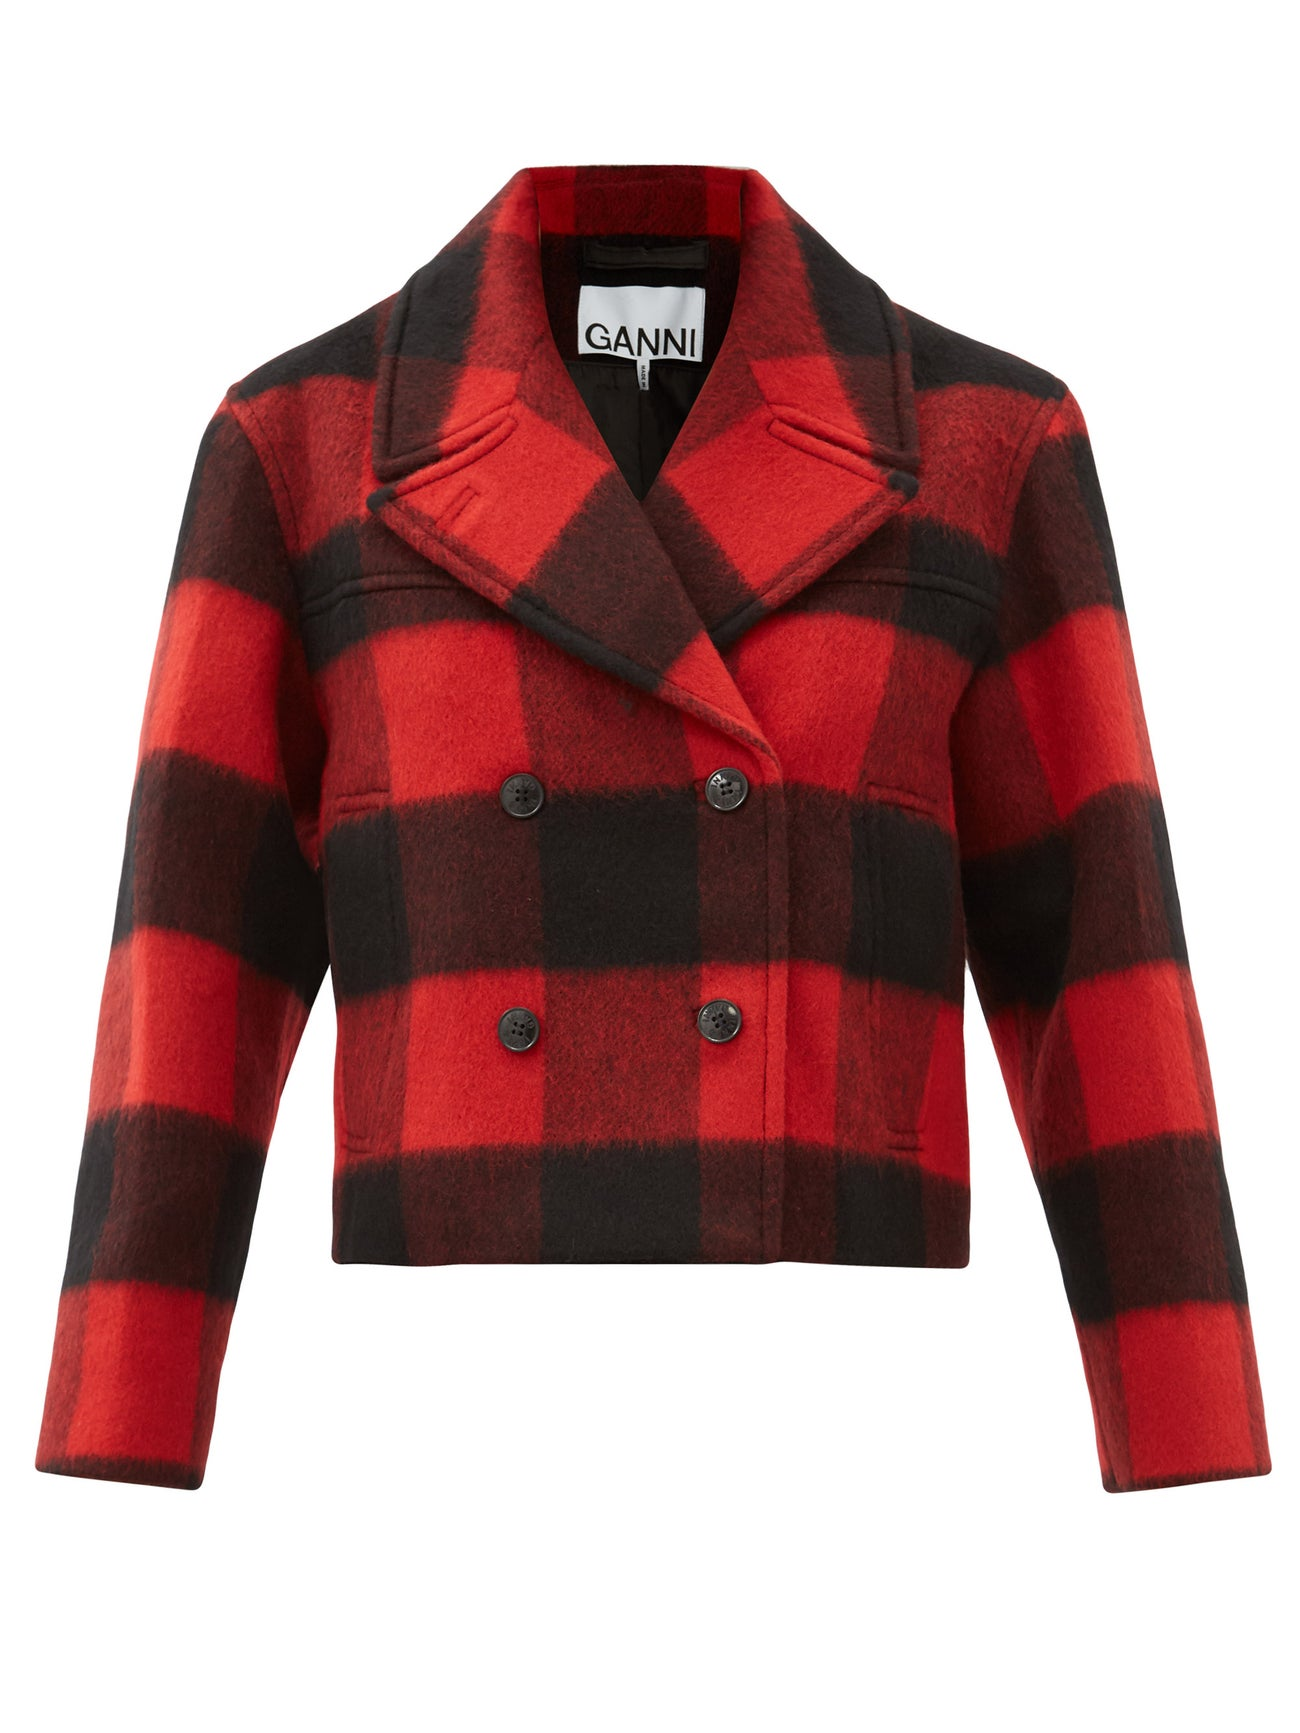 Ganni-Double-breasted-check-wool-blend-jacket